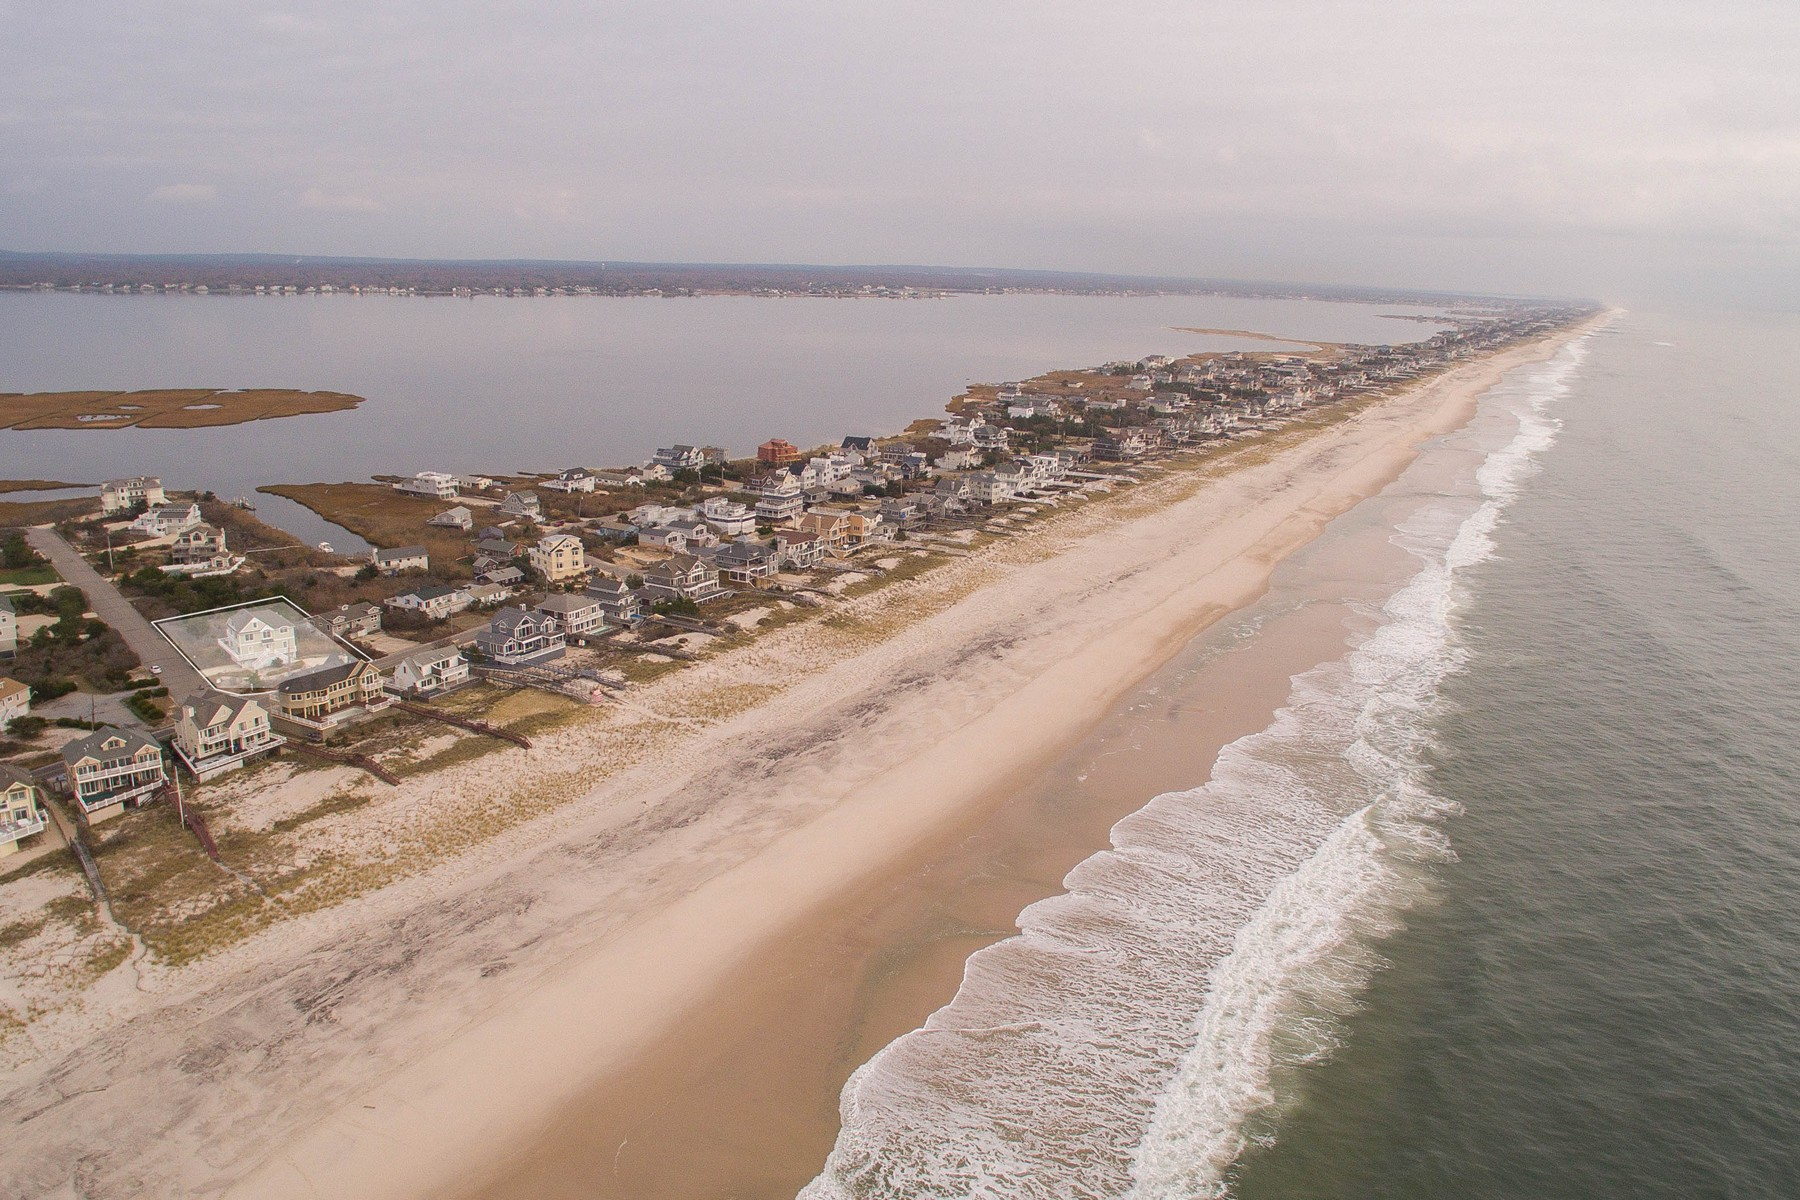 Single Family Homes for Sale at Westhampton Bch 902 Dune Rd Westhampton Beach, New York 11978 United States